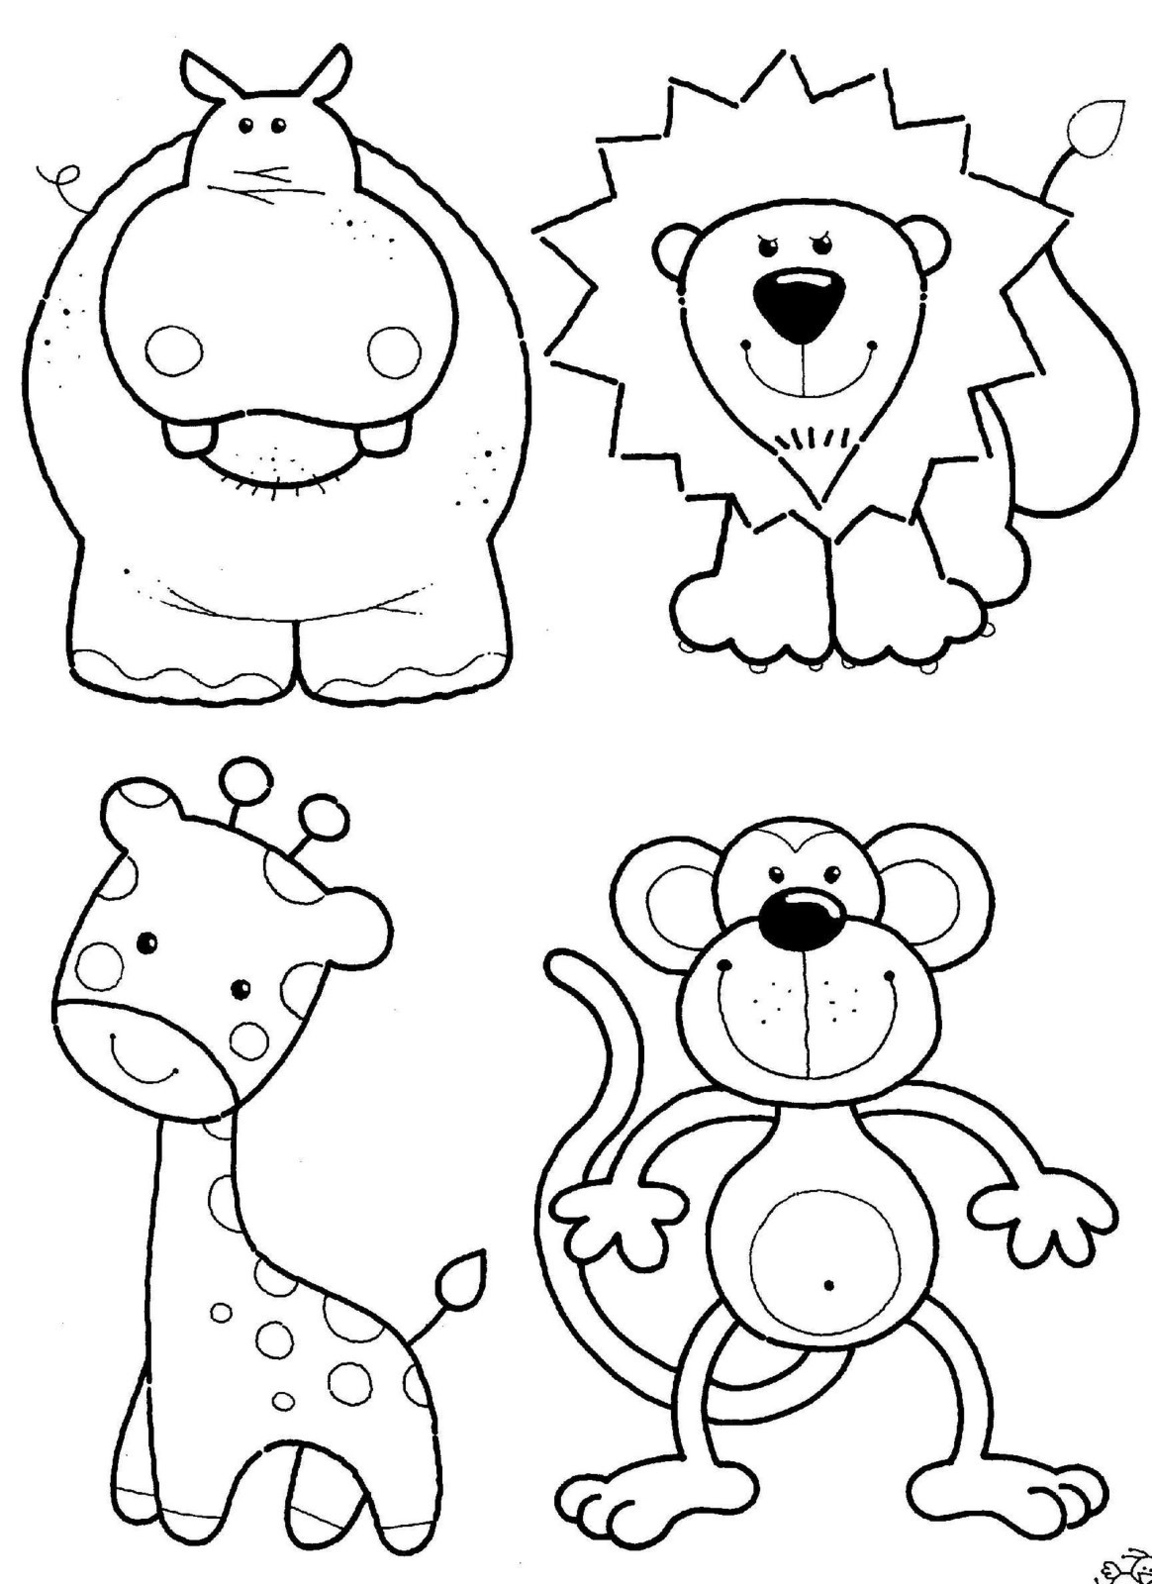 safari animals coloring pages - photo#5